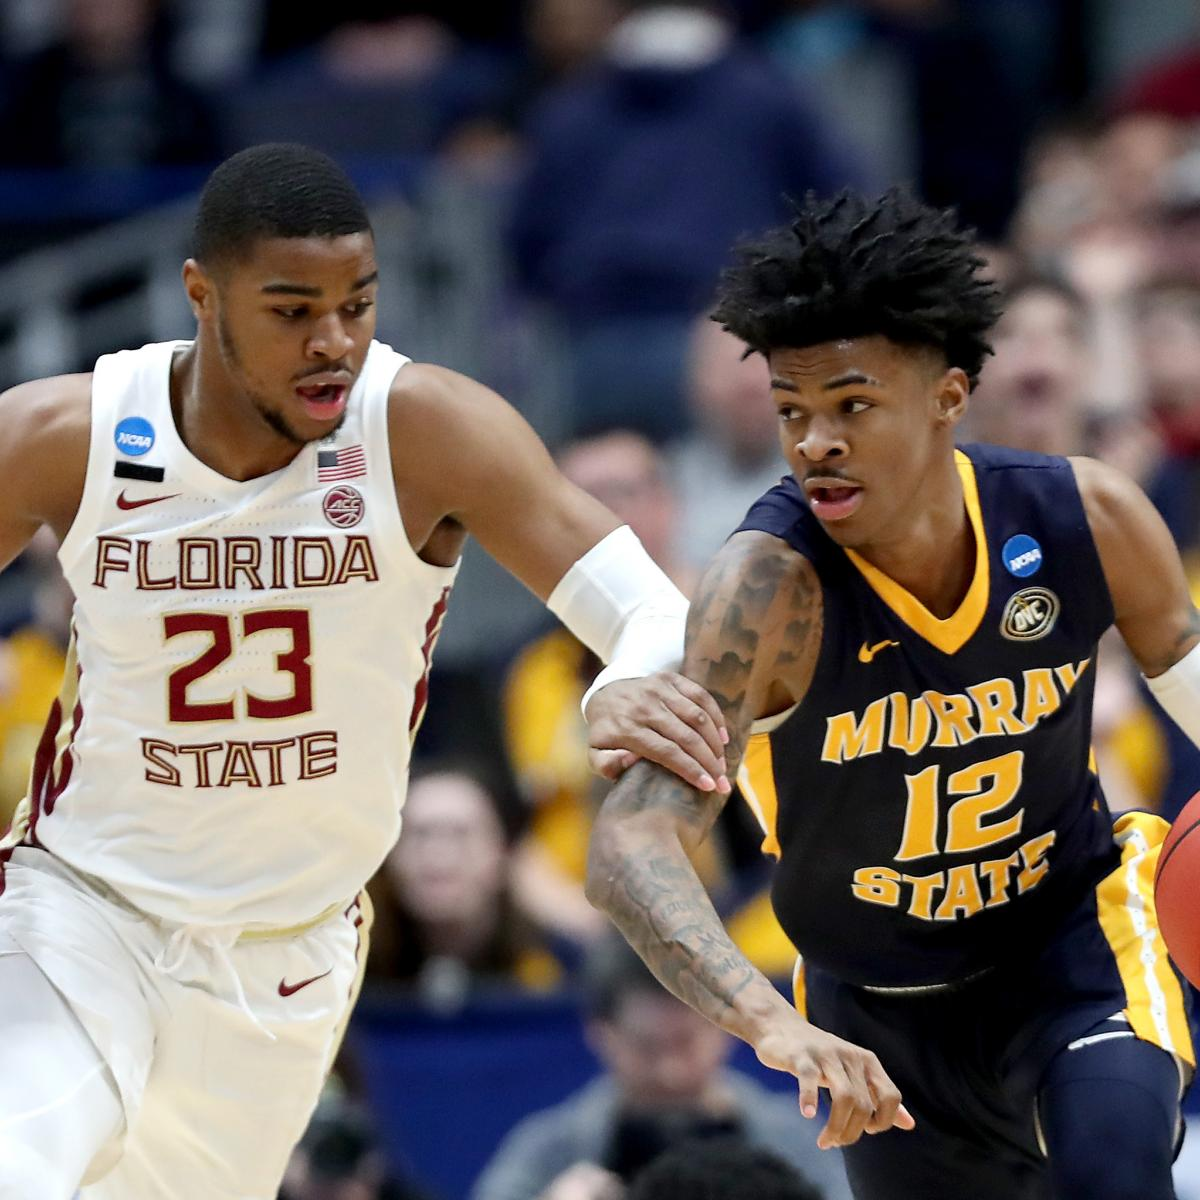 Colorado Shooting R H Youtube Com: Ja Morant Gives Autographed Shoes To Young Fan After NCAA